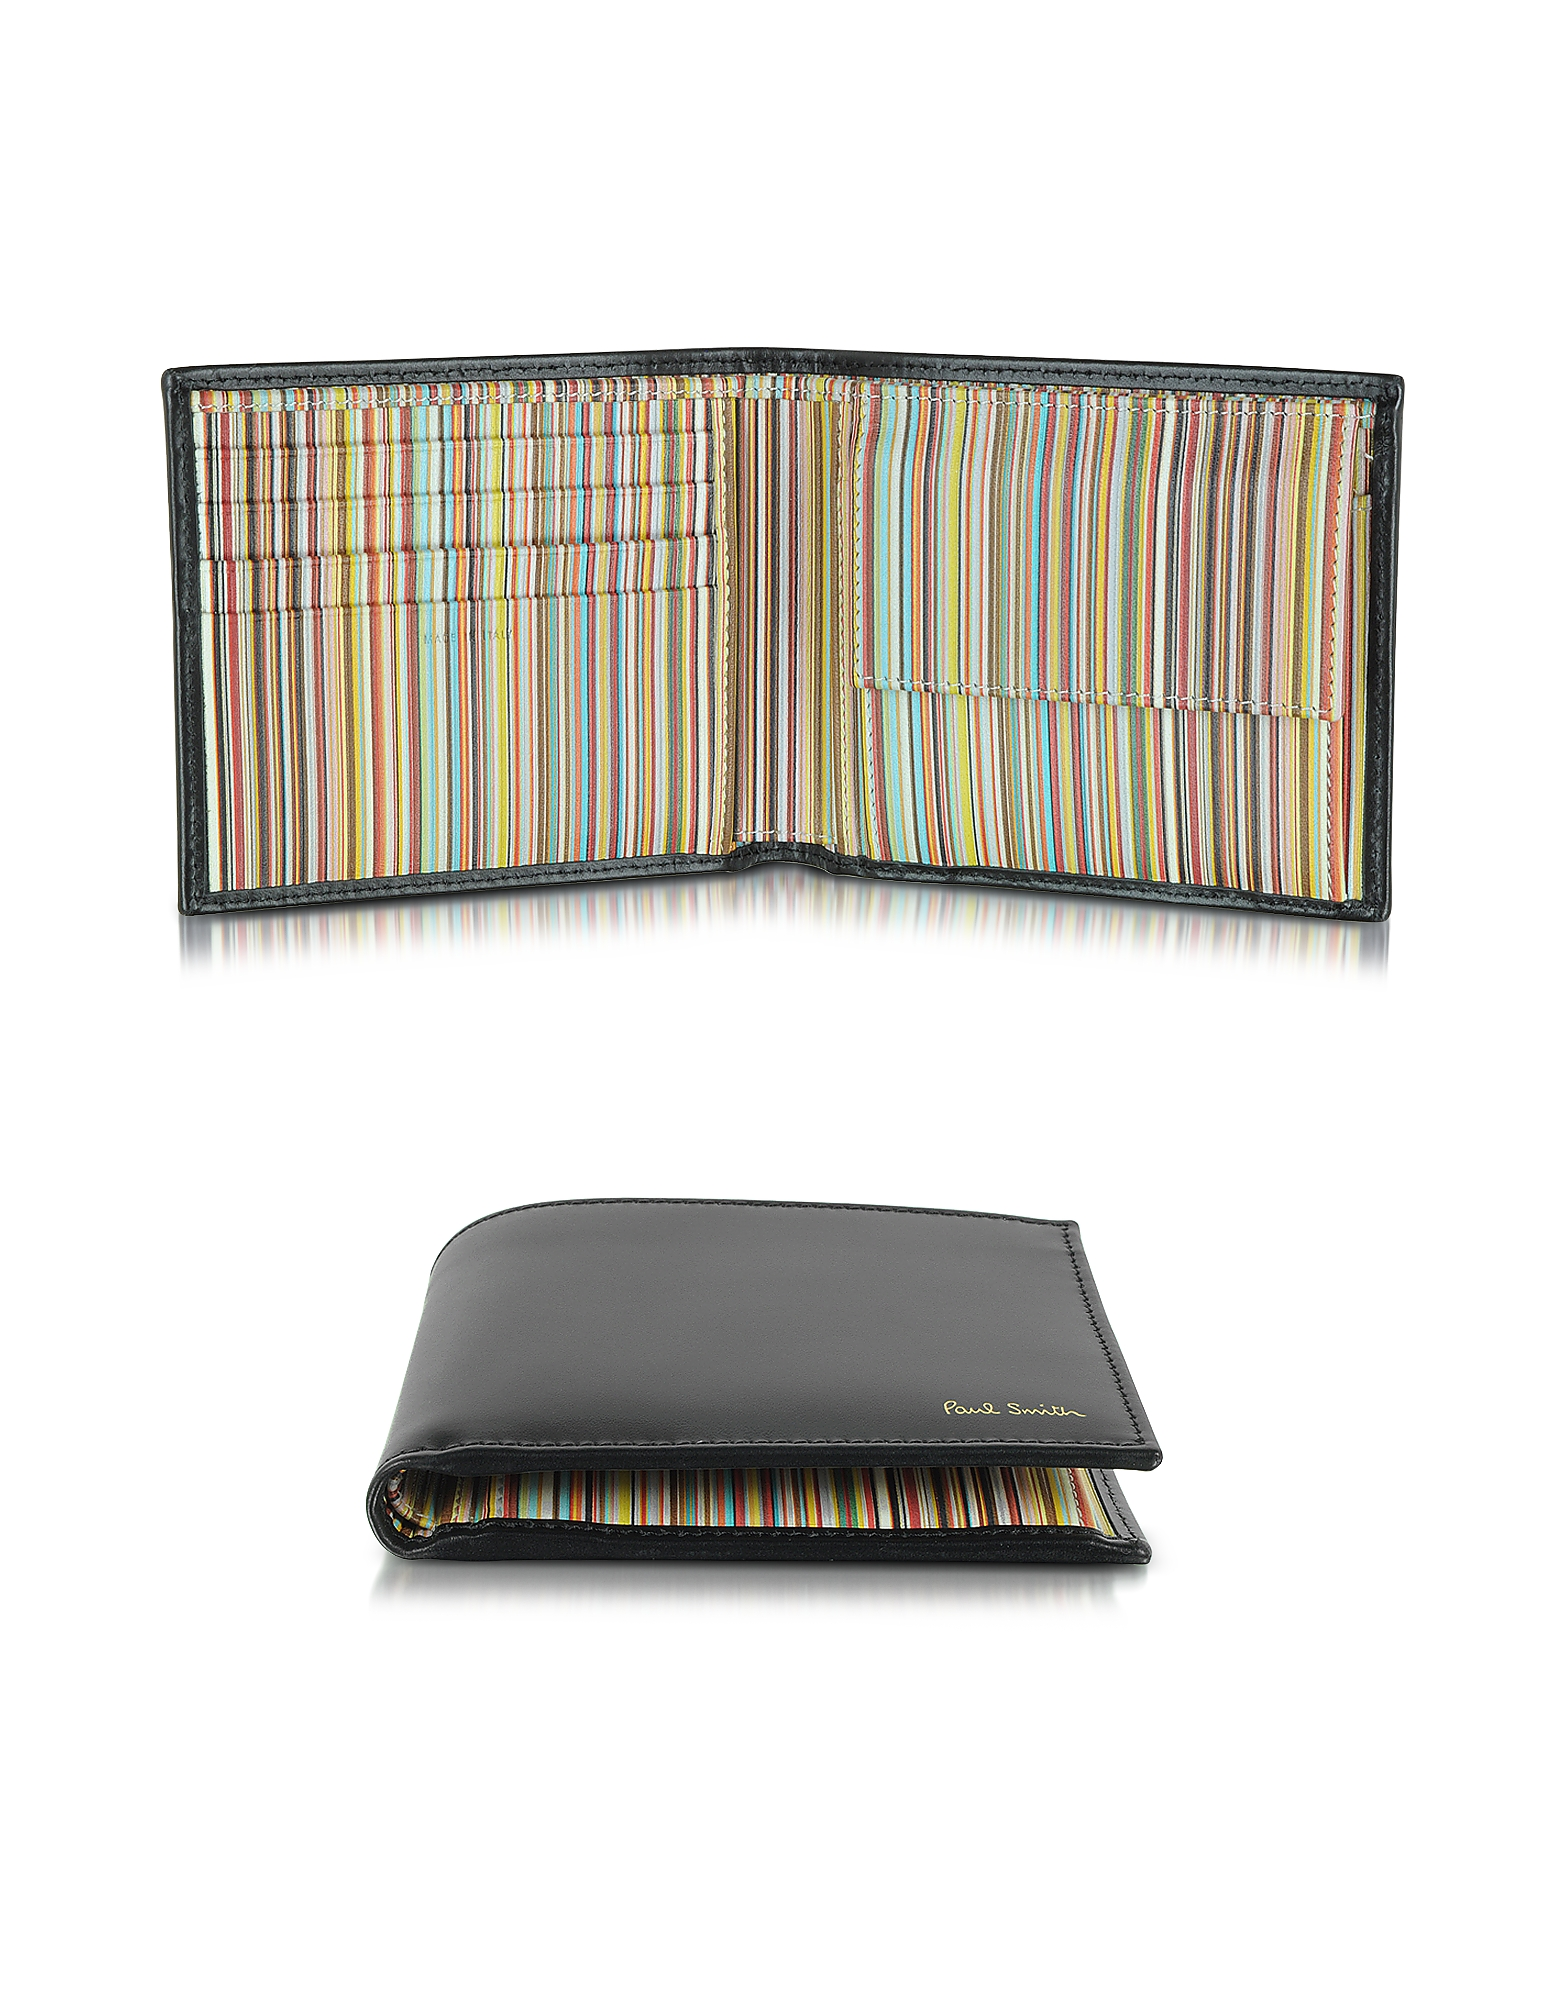 Paul Smith Wallets, Men's Black Leather and Signature Stripe Interior Billfold and Coin Wallet